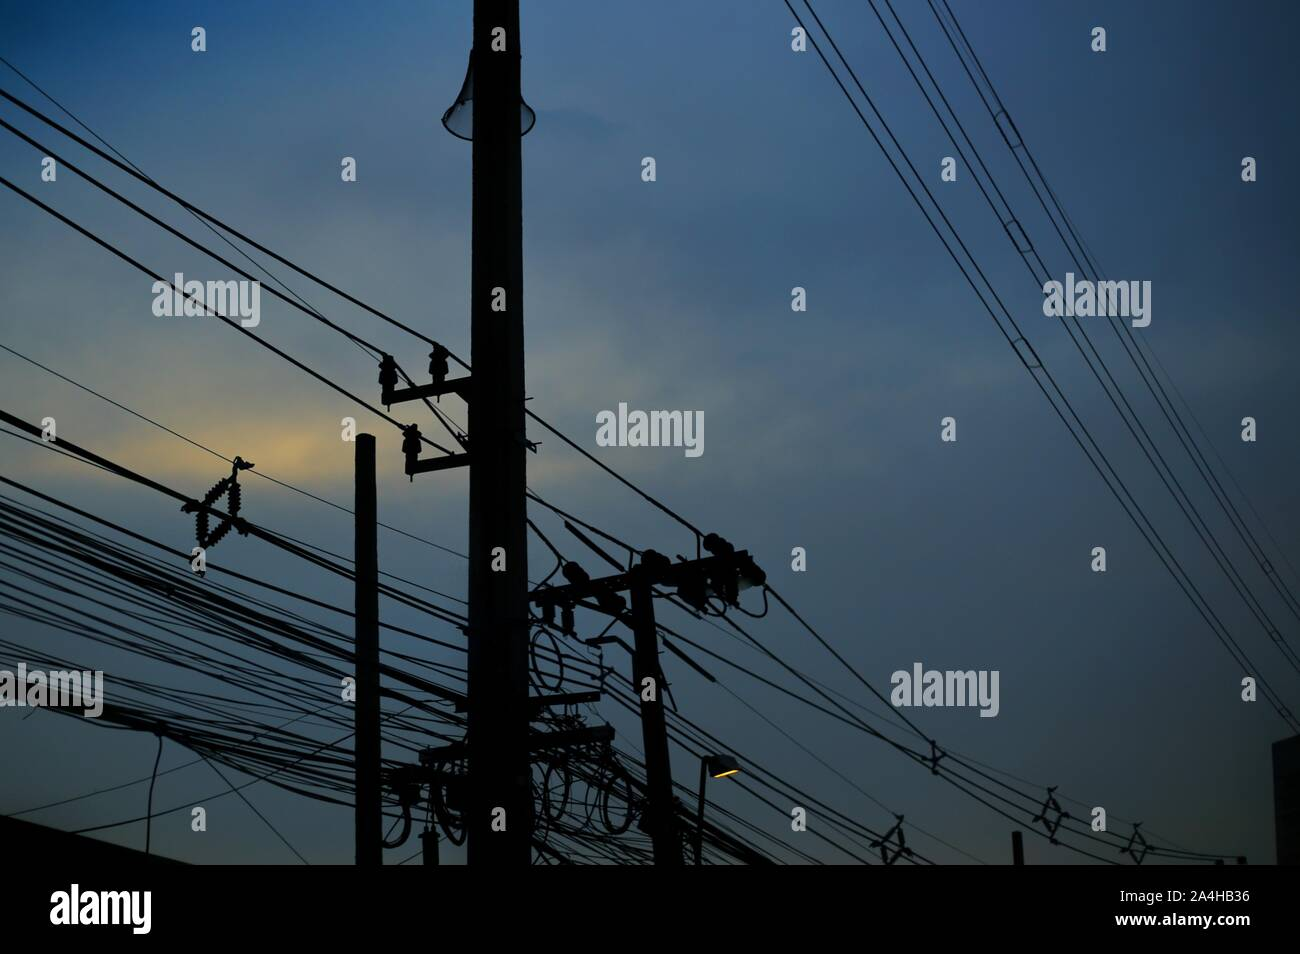 electrical power and telecommunication lines silhouette. blue hour after sunset. irregular and chaotic arrangement pattern. unordered poor design of t Stock Photo